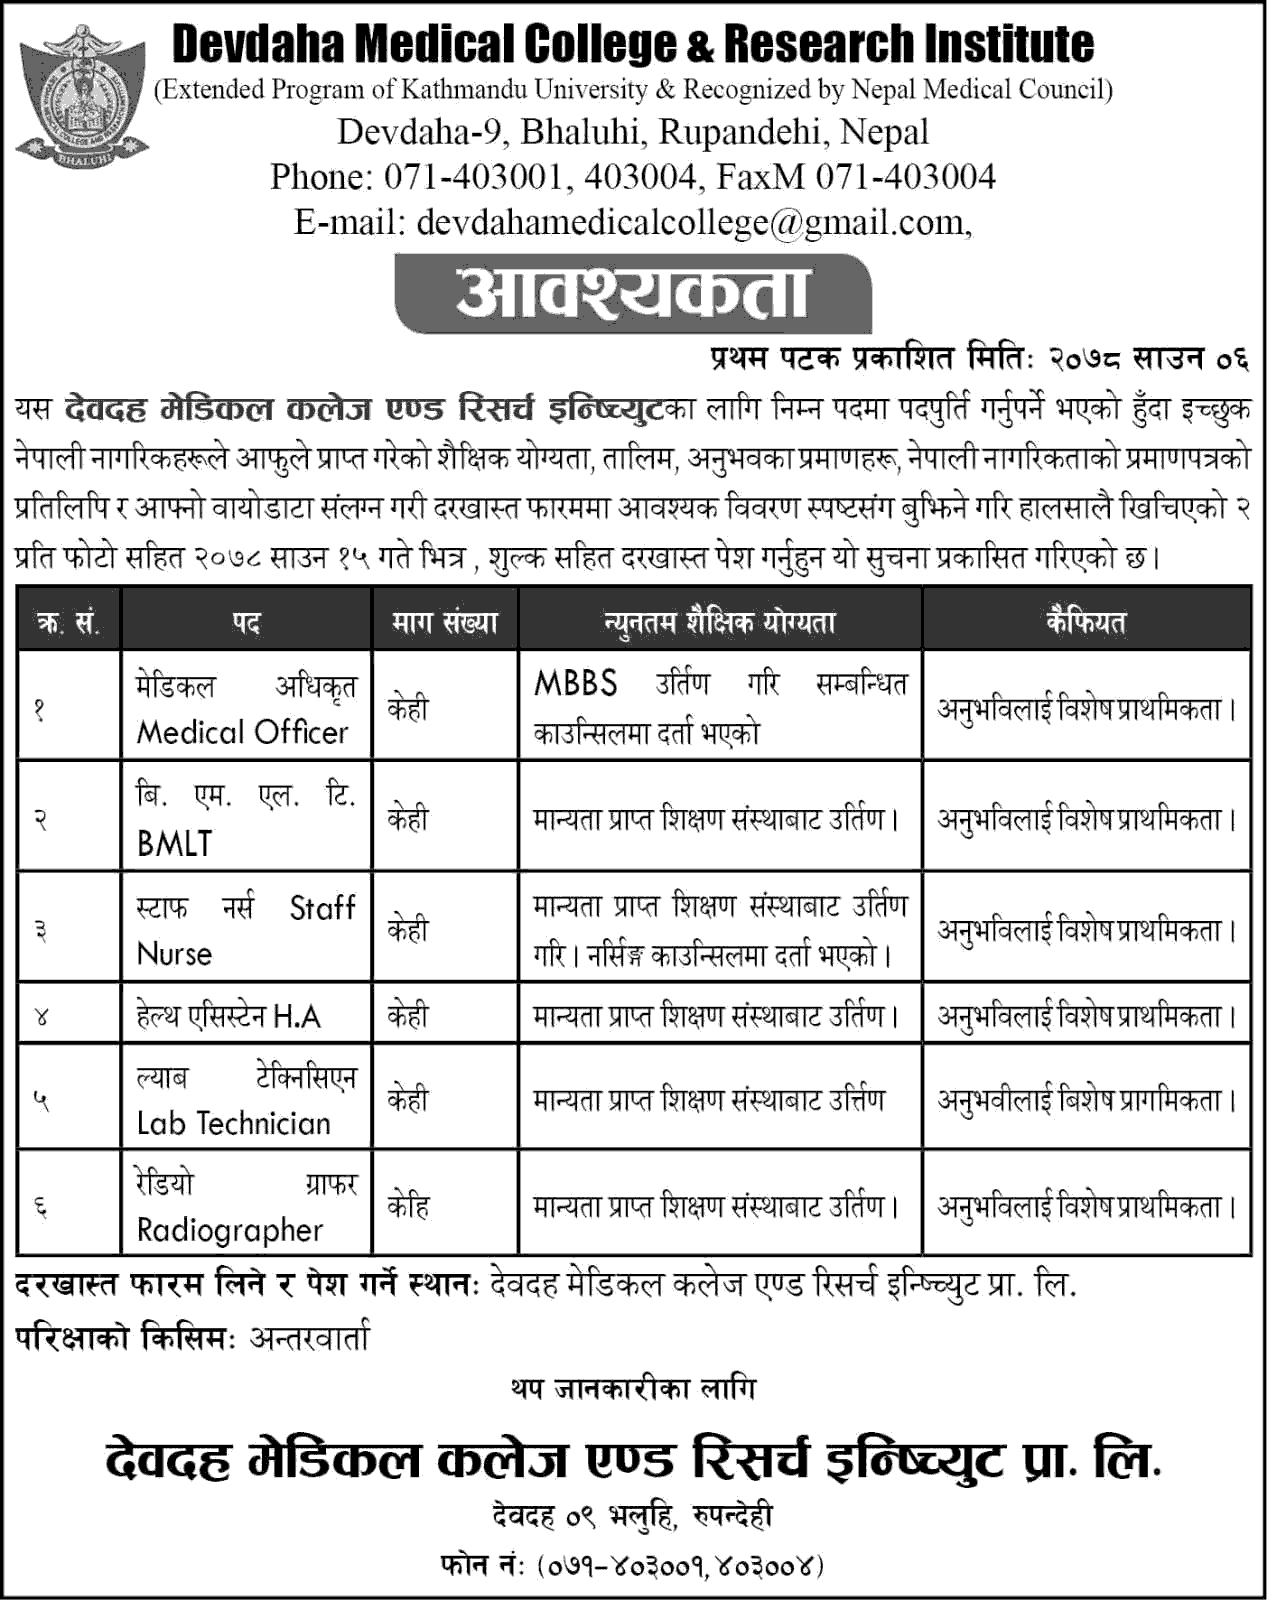 Devadaha Medical College and Research Institute Vacancy Announcement